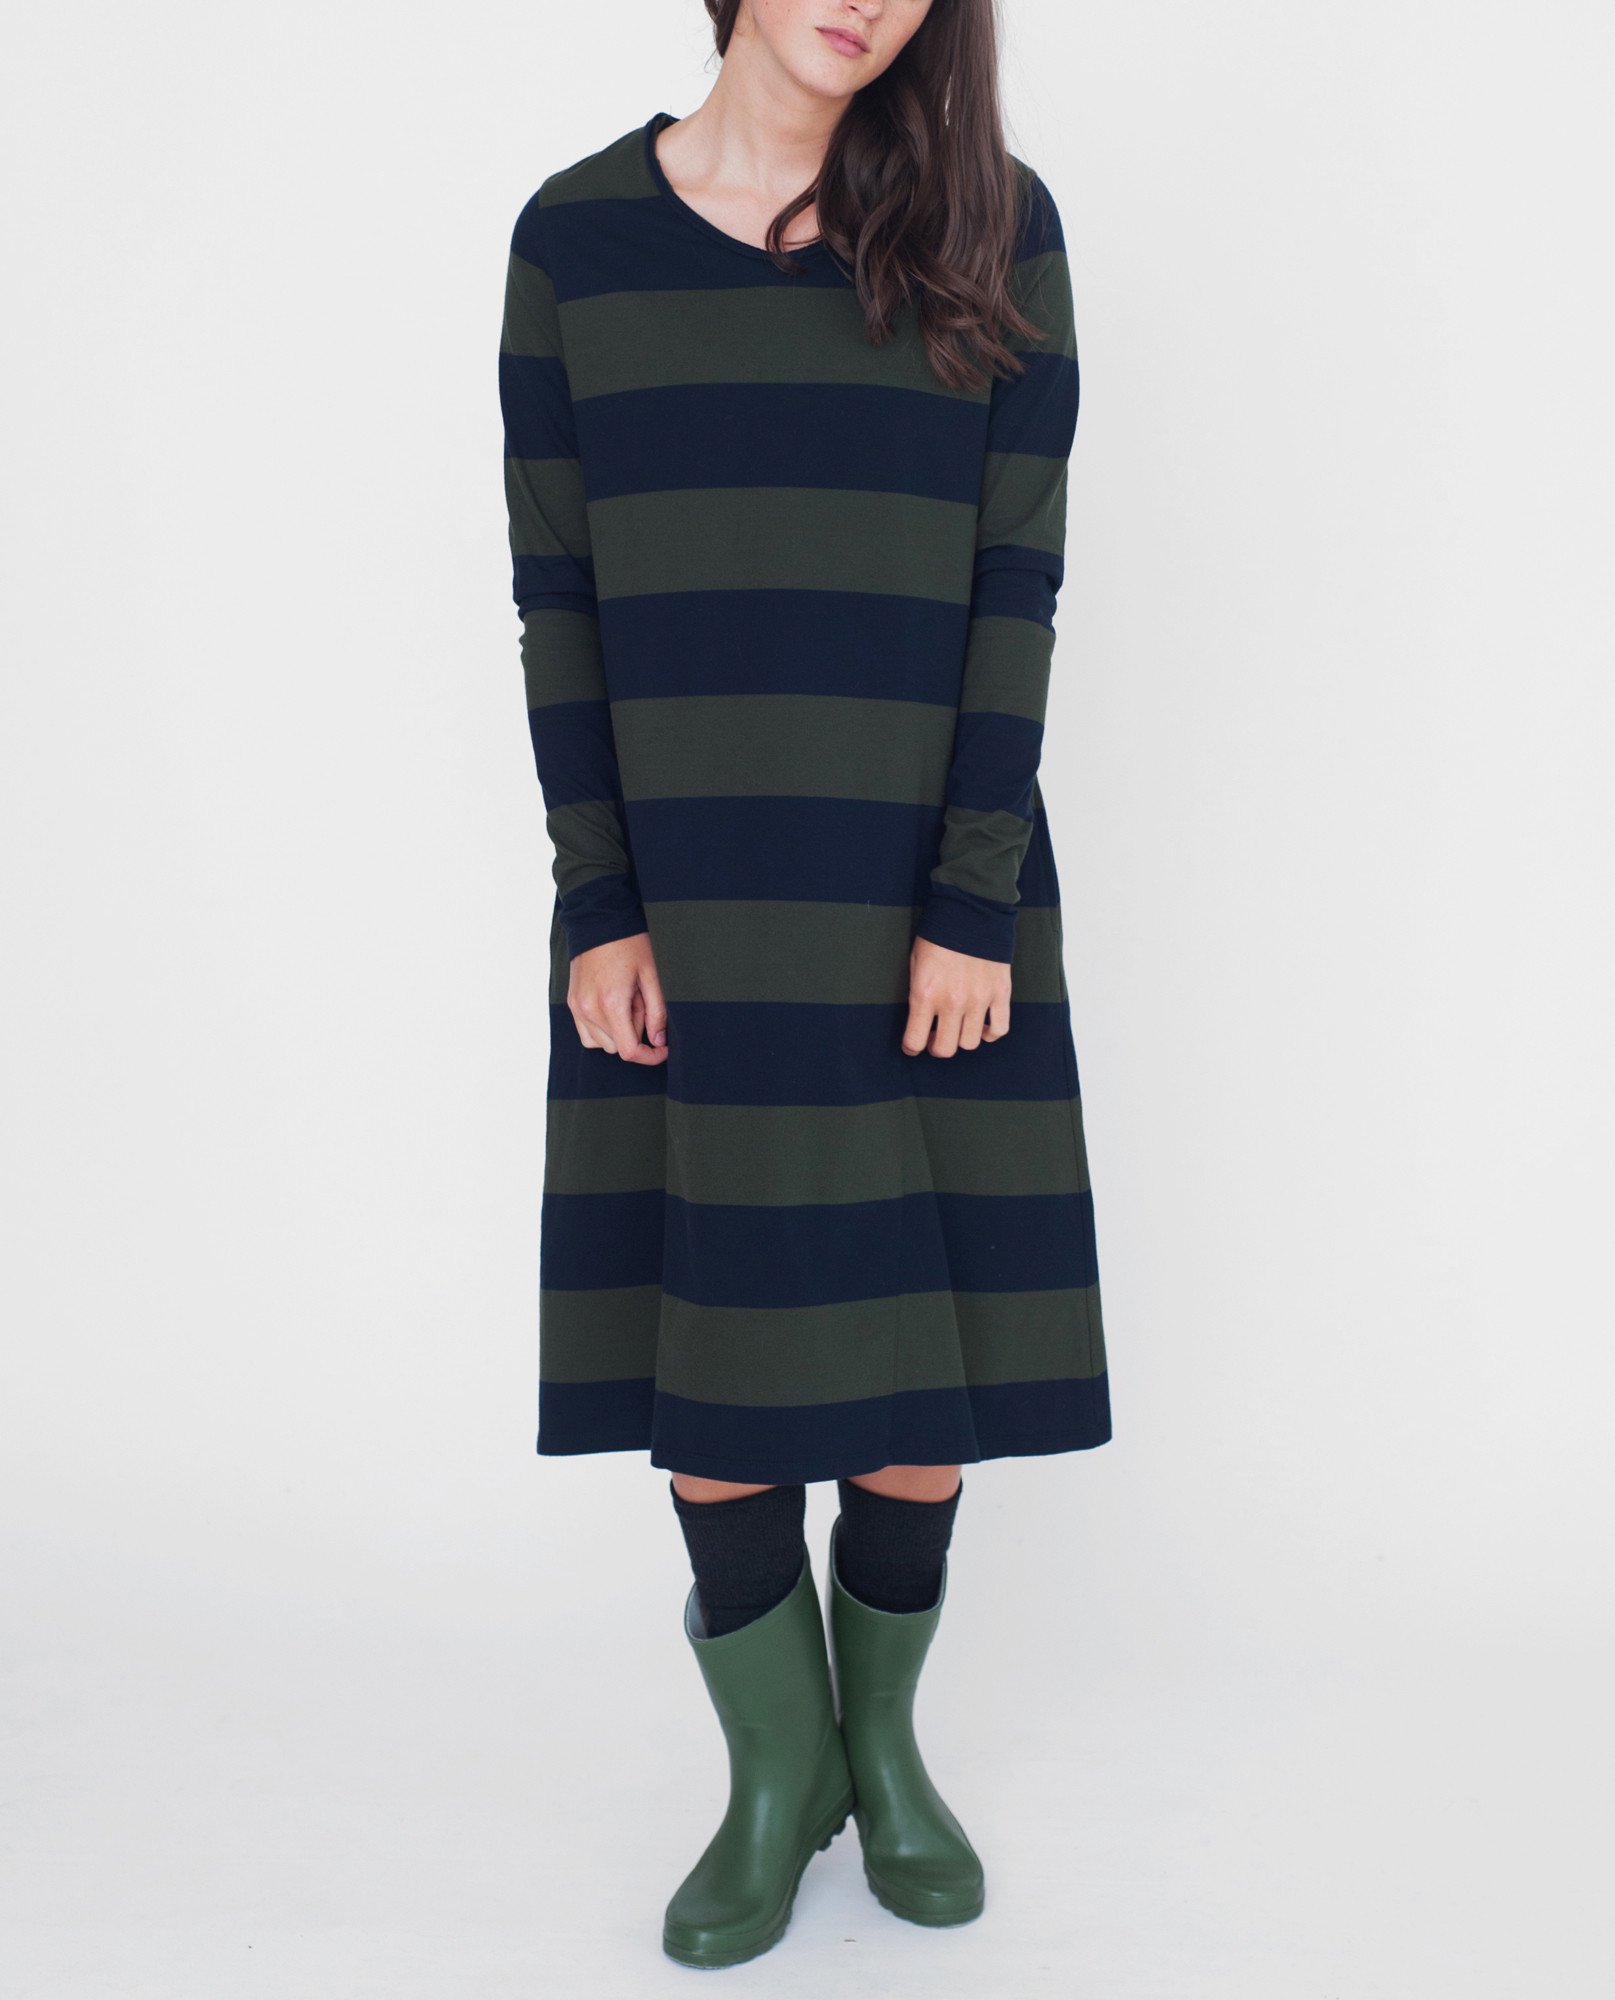 VICKY Organic Cotton Dress In Navy And Green from Beaumont Organic